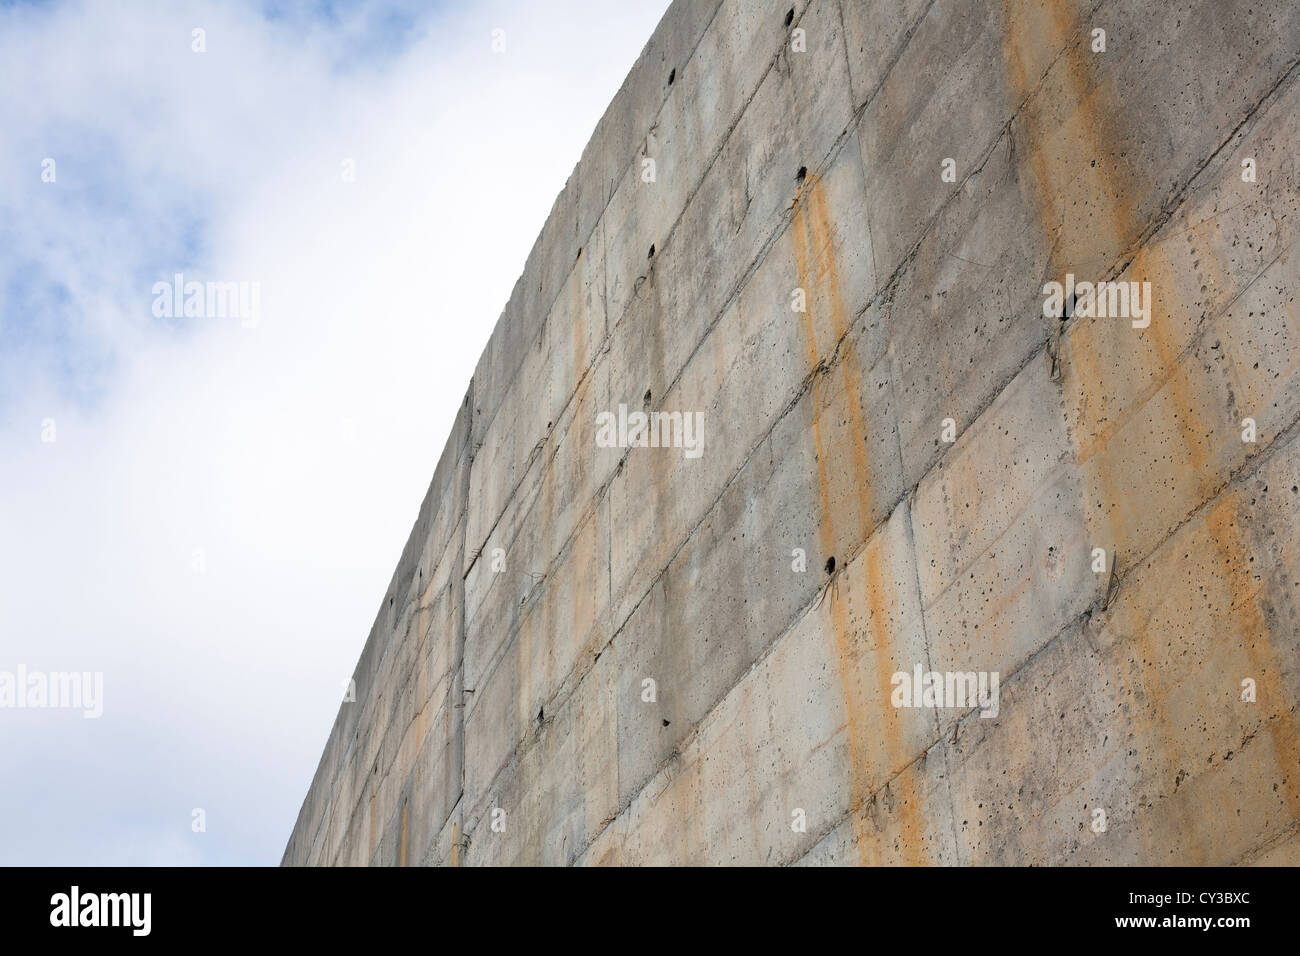 A High Concrete Retaining Wall With Drainage Holes And